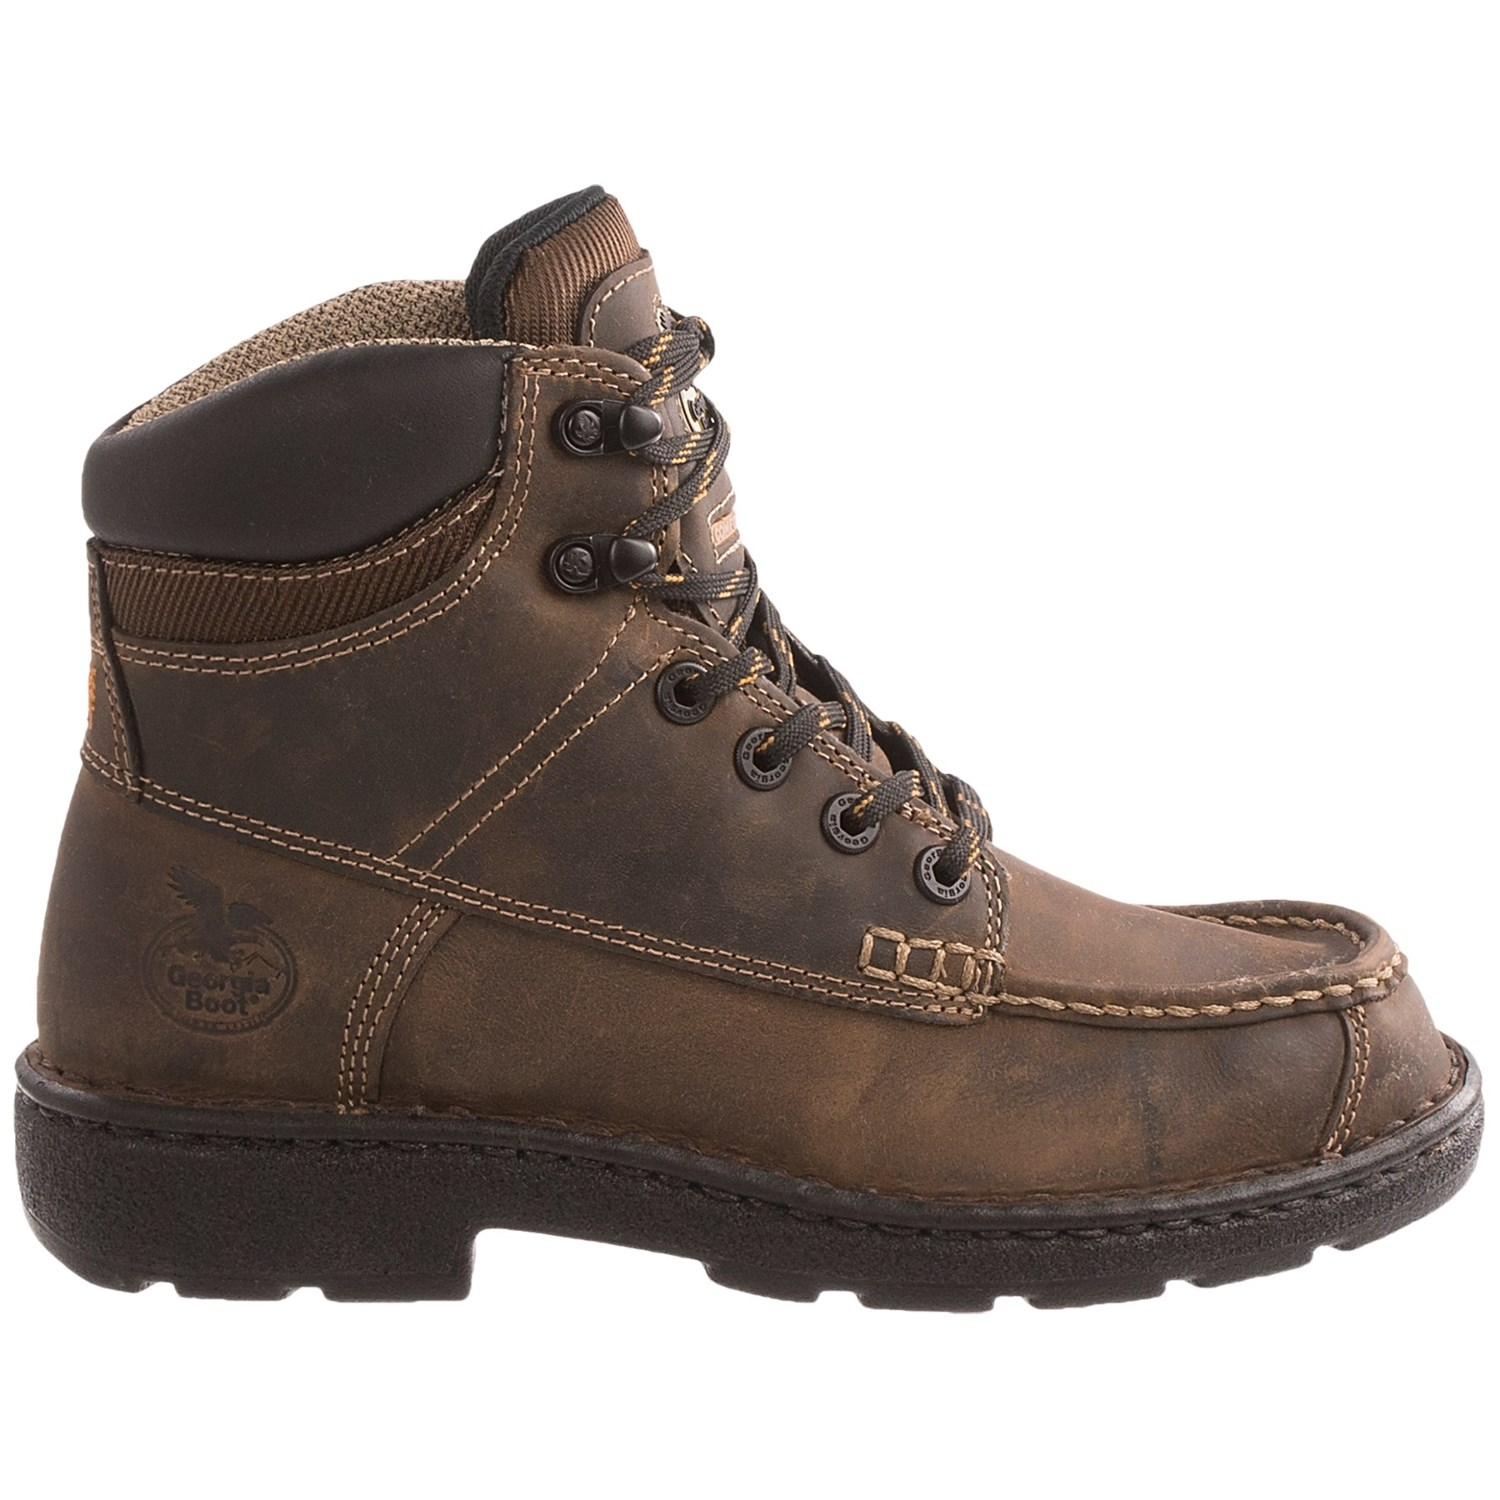 Georgia Boot Eagle Light Work Boots For Women 7540r